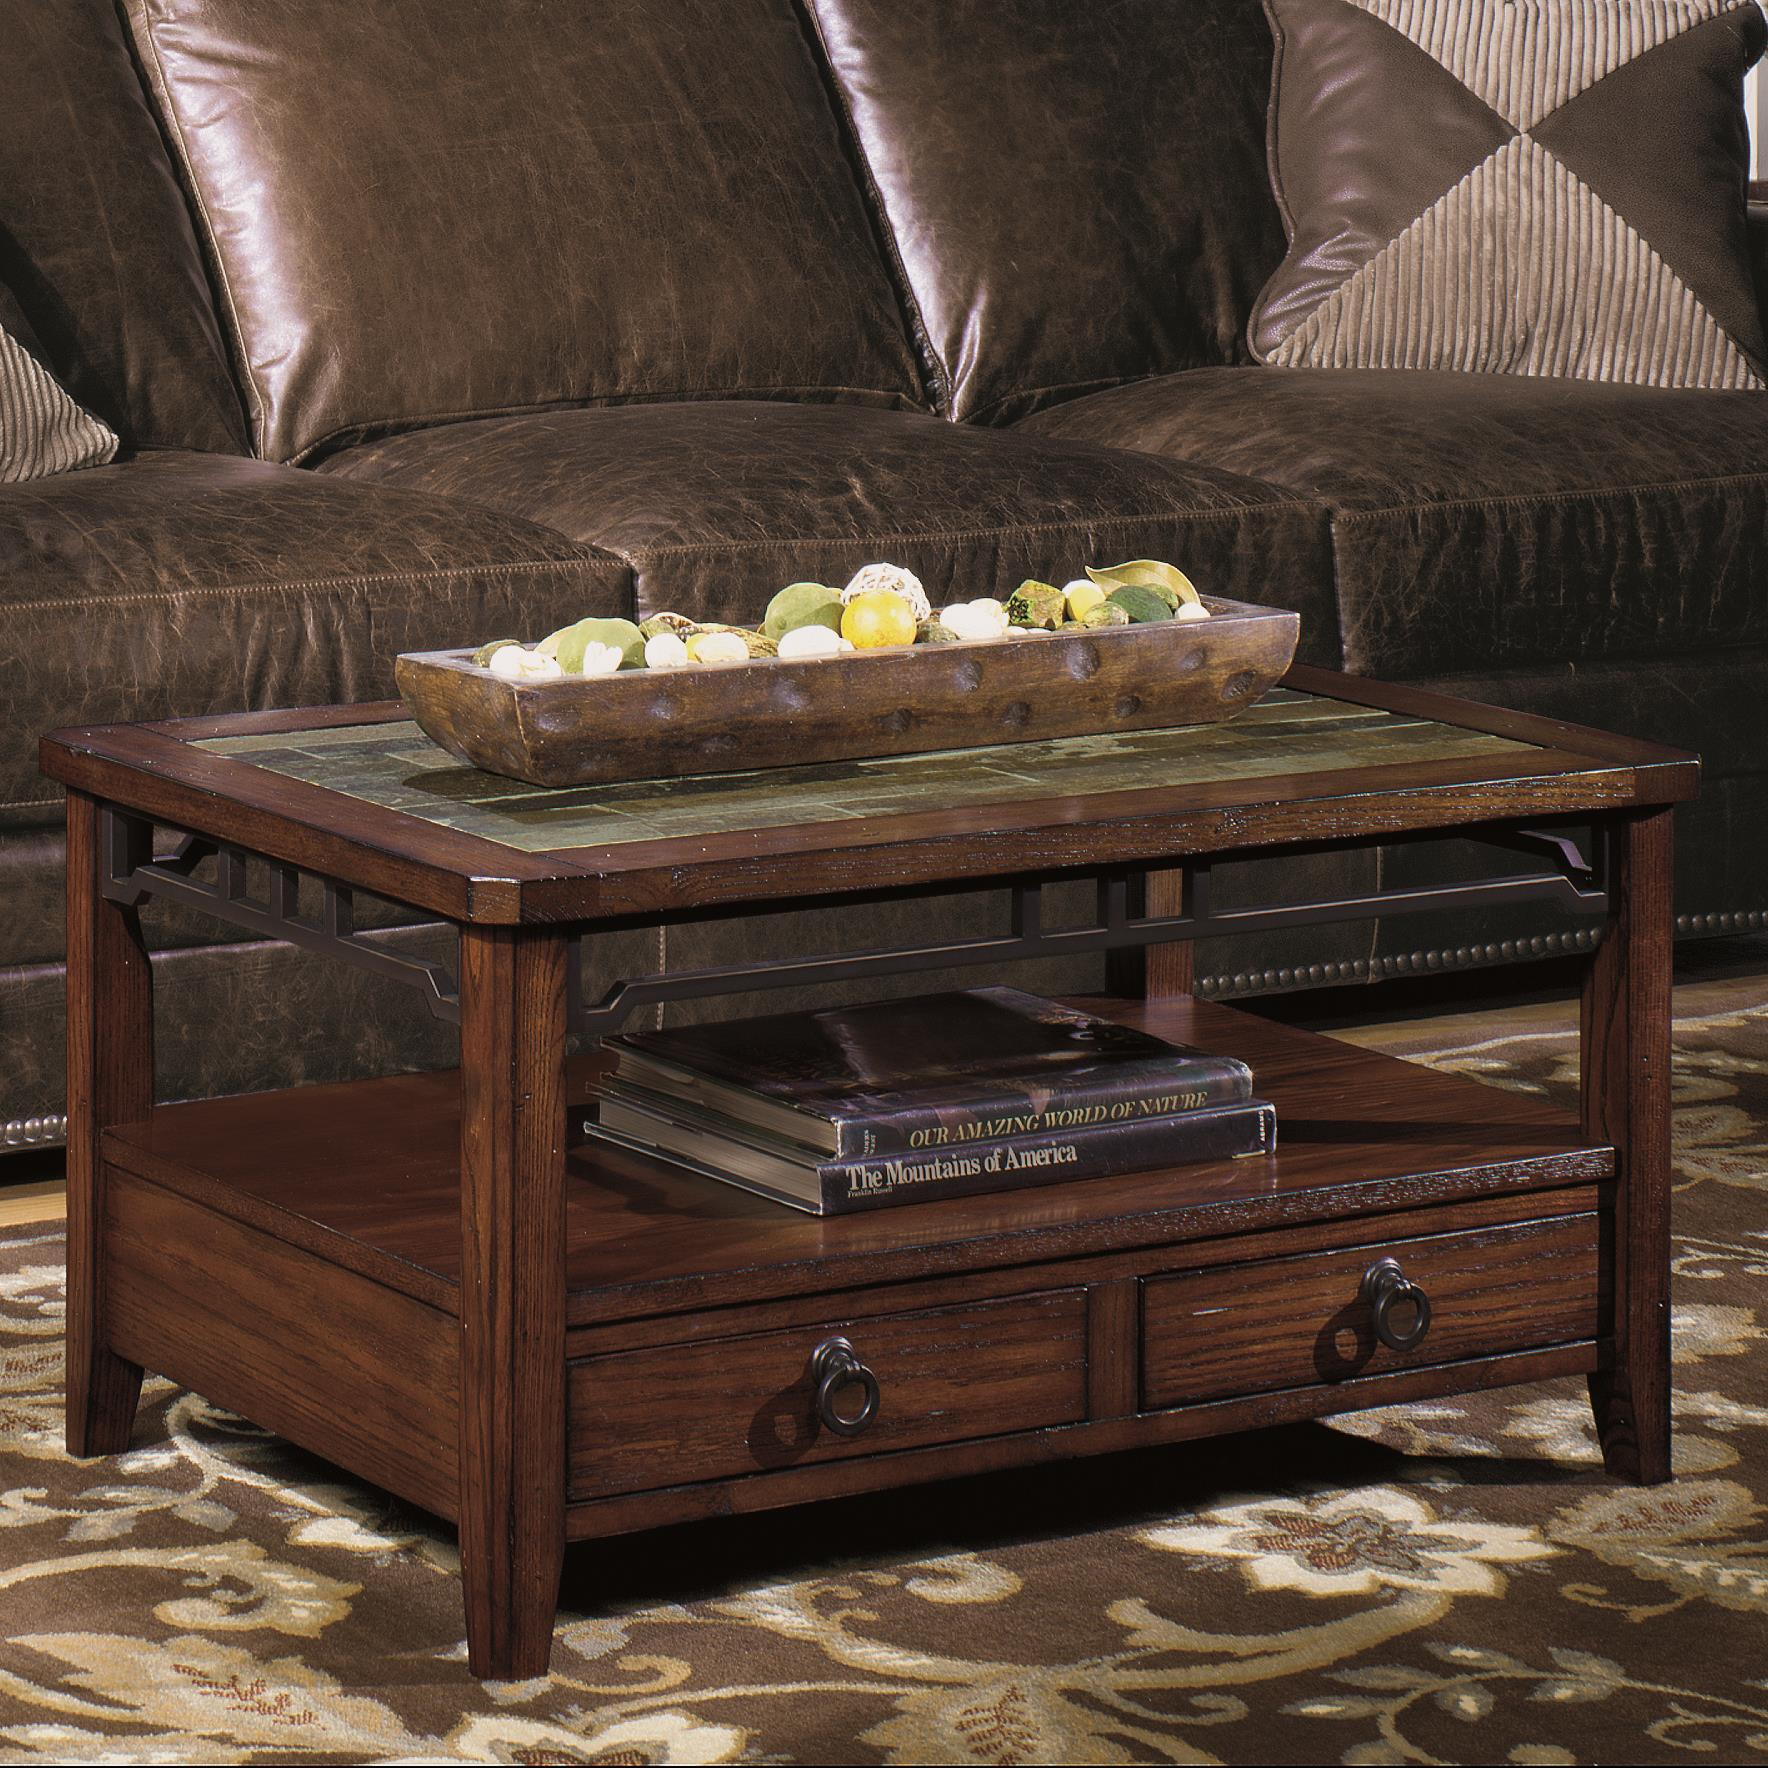 Null Furniture 5013 Rectangular Cocktail Table - Item Number: 5013-01